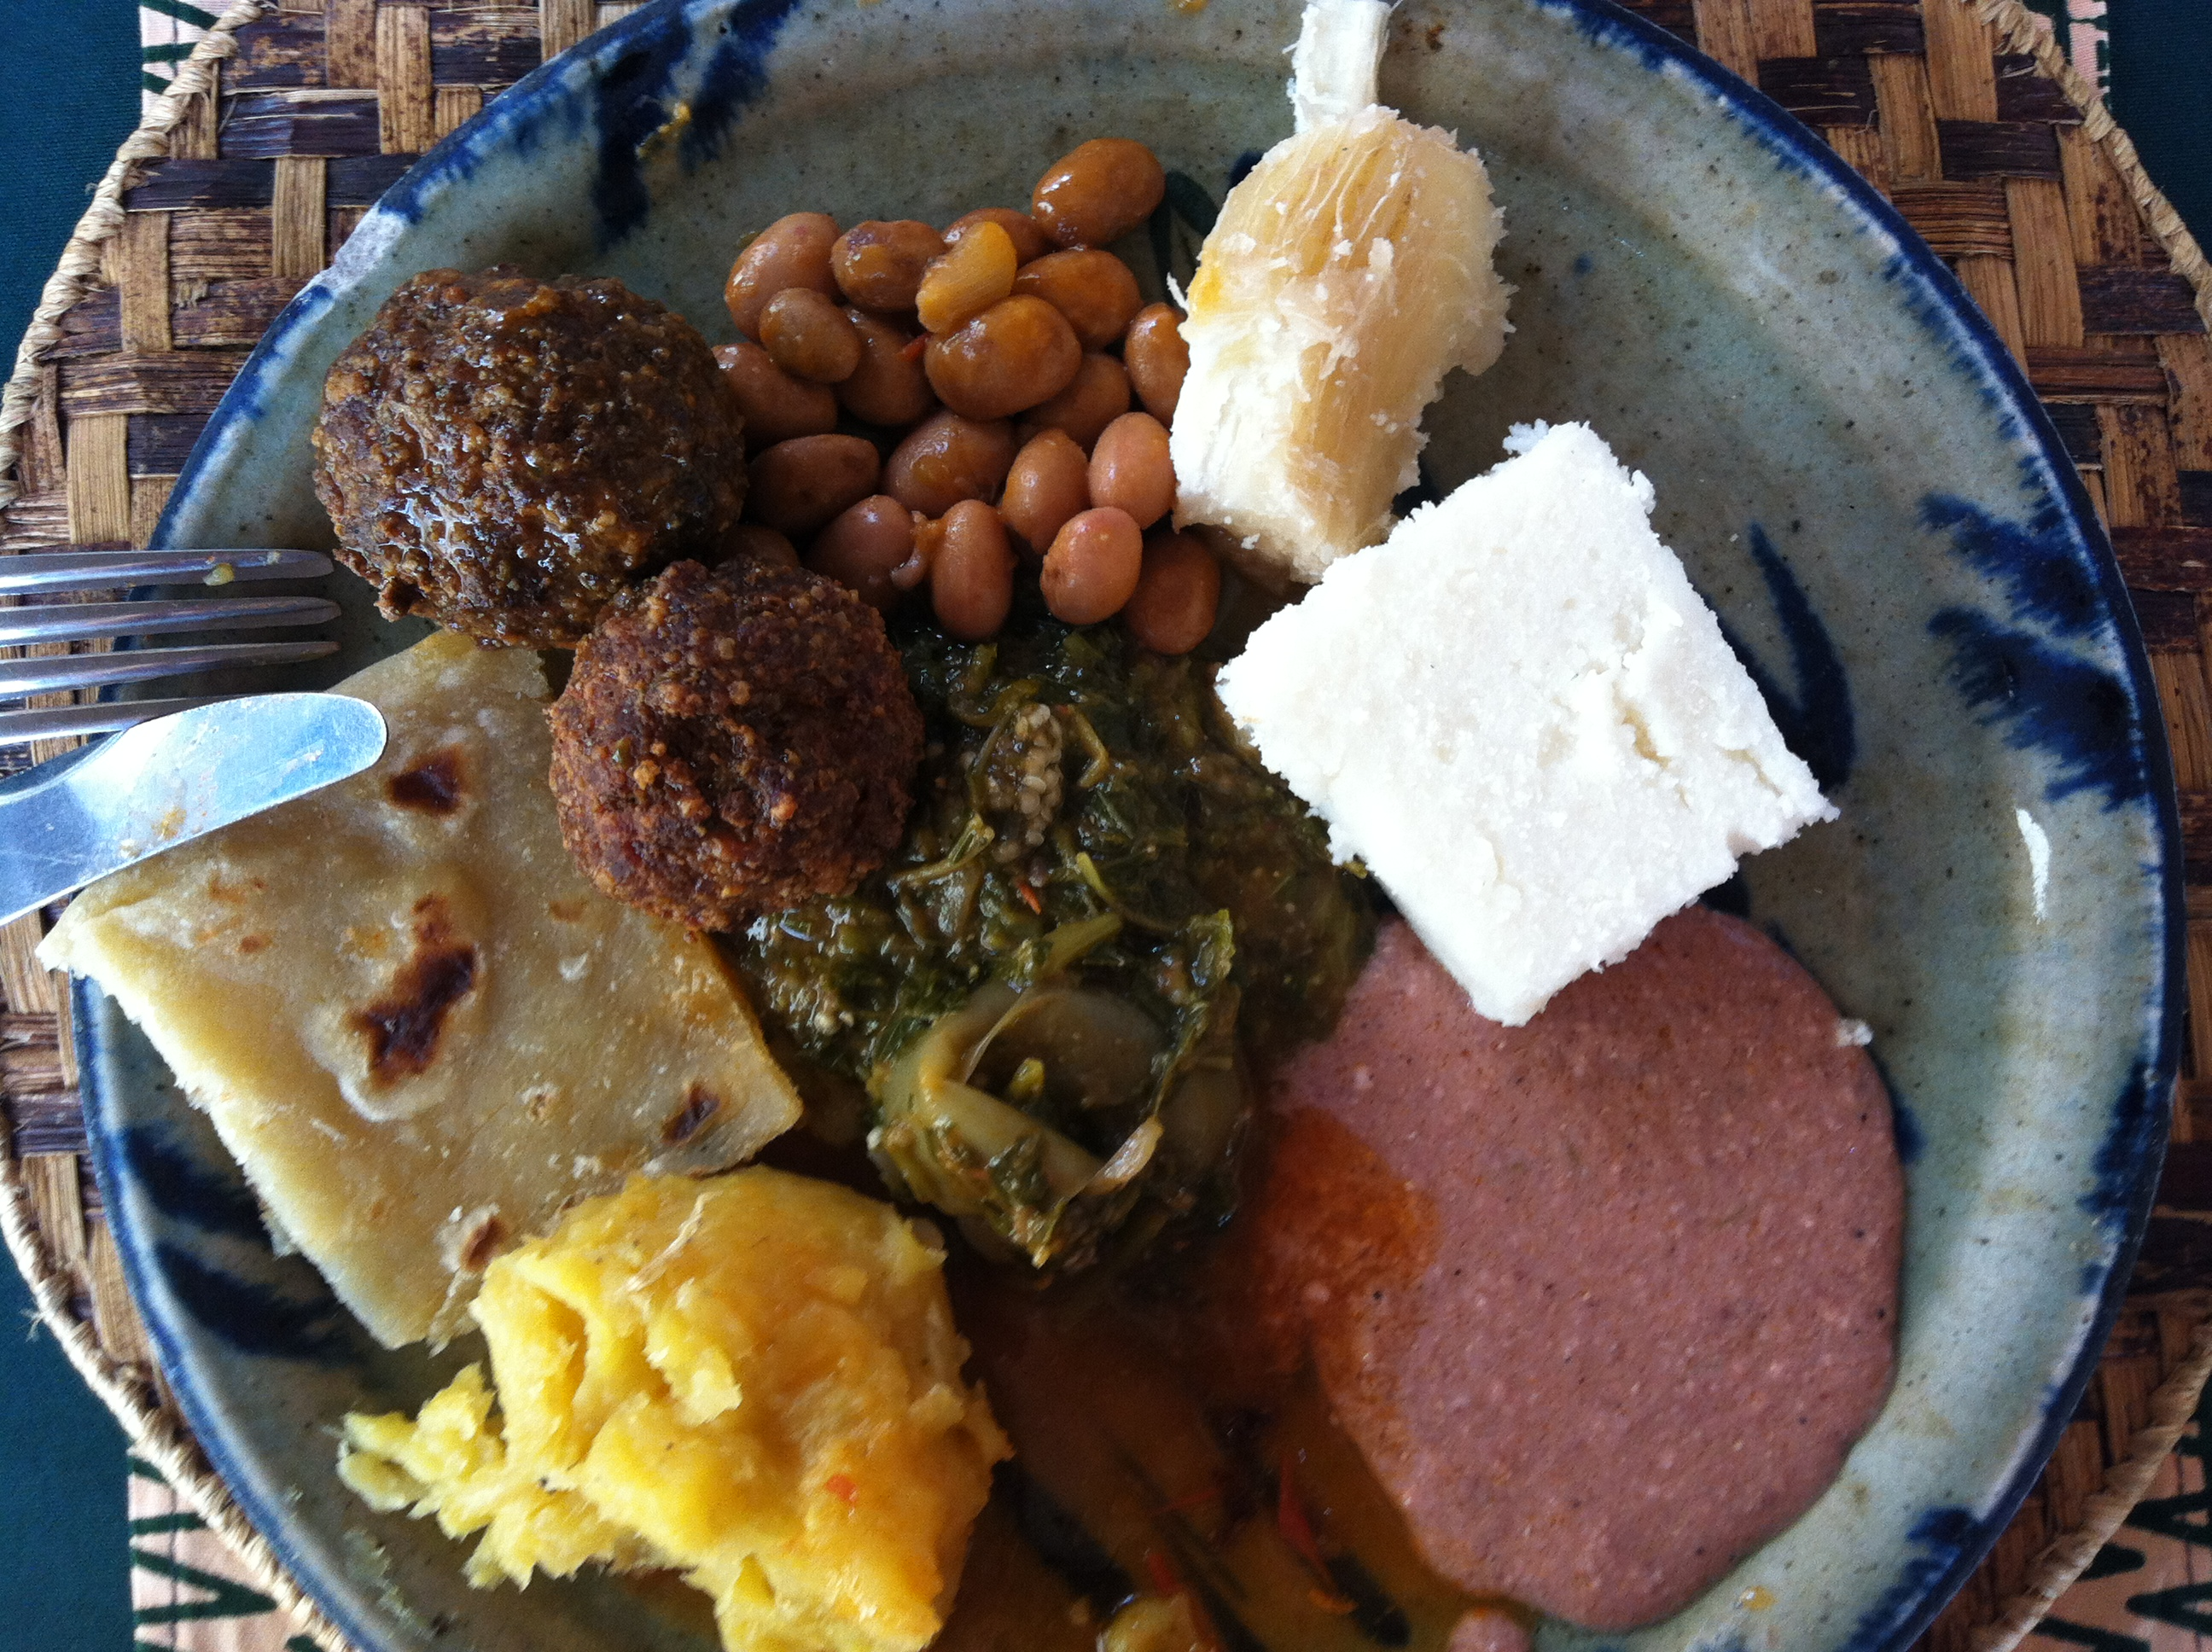 One Of A Kind Rwanda S Unique Food Culture Food And The World